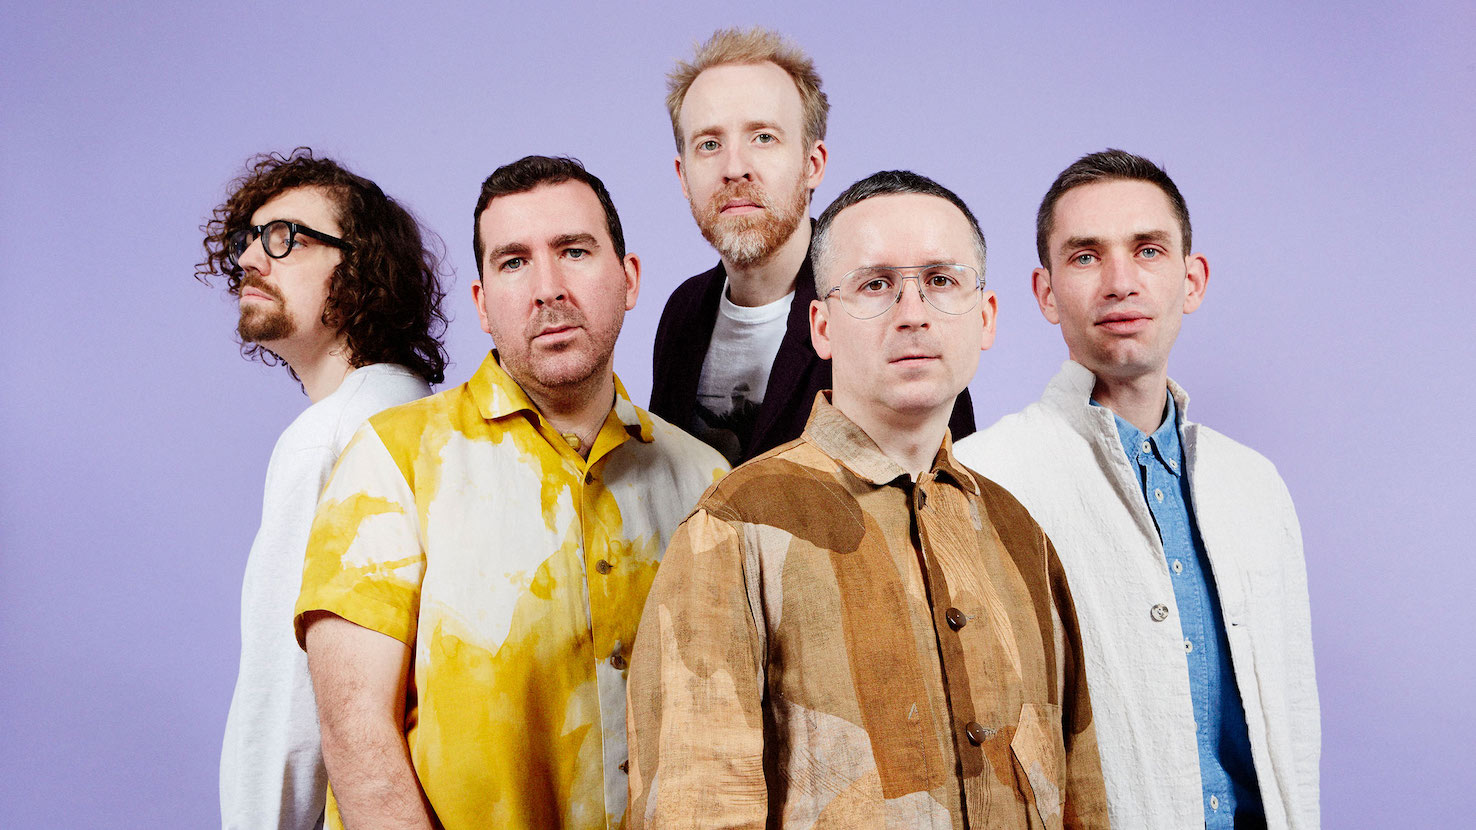 Hot Chip's – A Bath Full of Ecstasy Tour is coming to Australia!